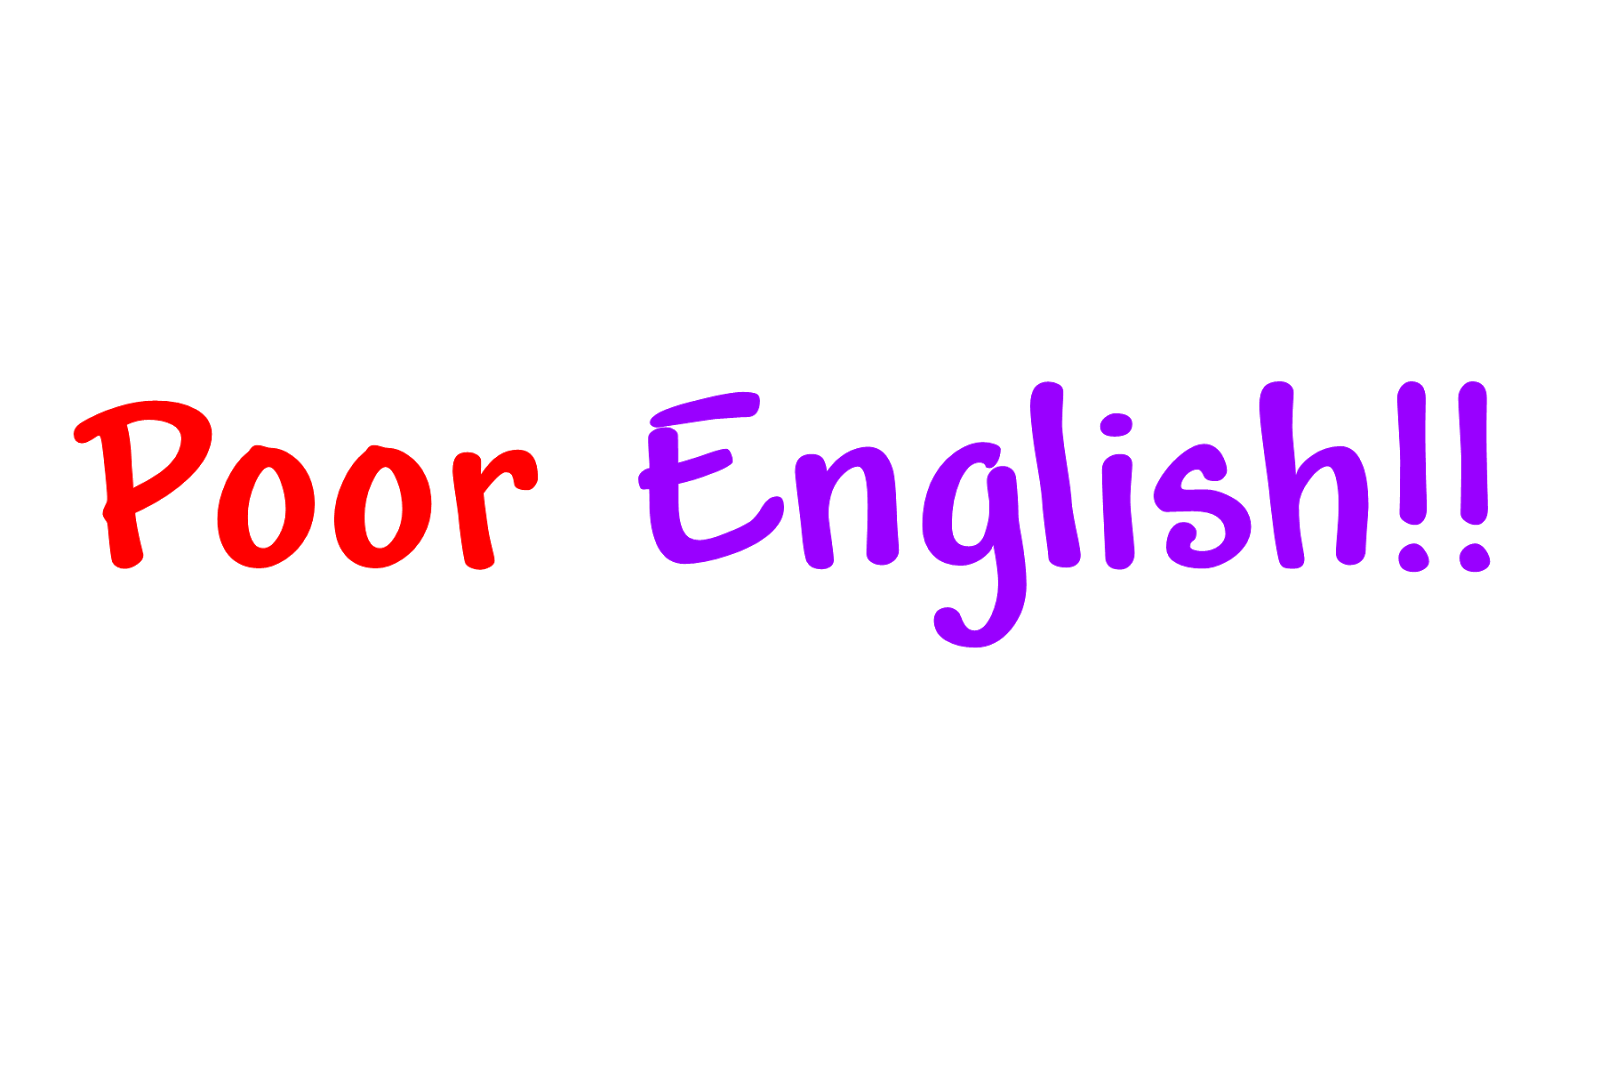 Poor performance of english subject